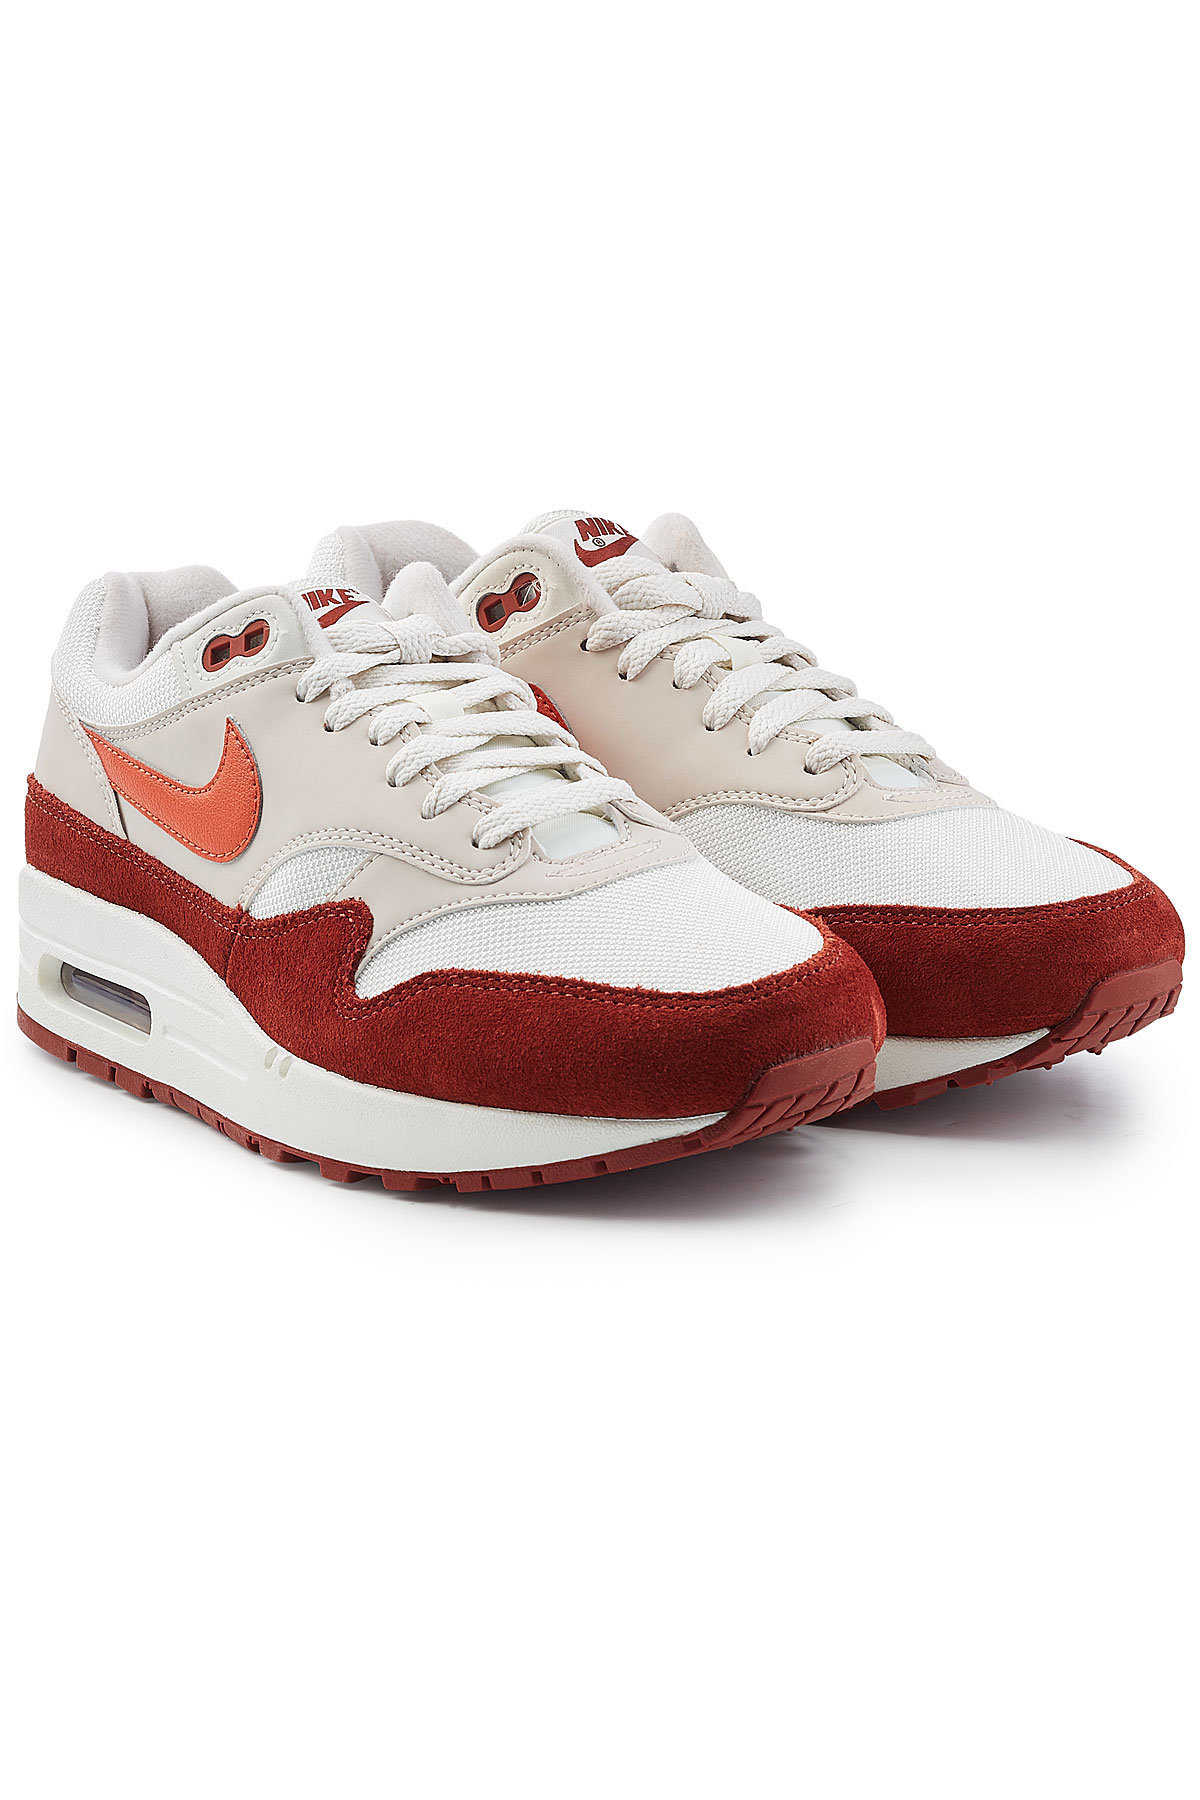 88c107d8b23 Nike Air Max 1 Sneakers with Suede GOOFASH 292988